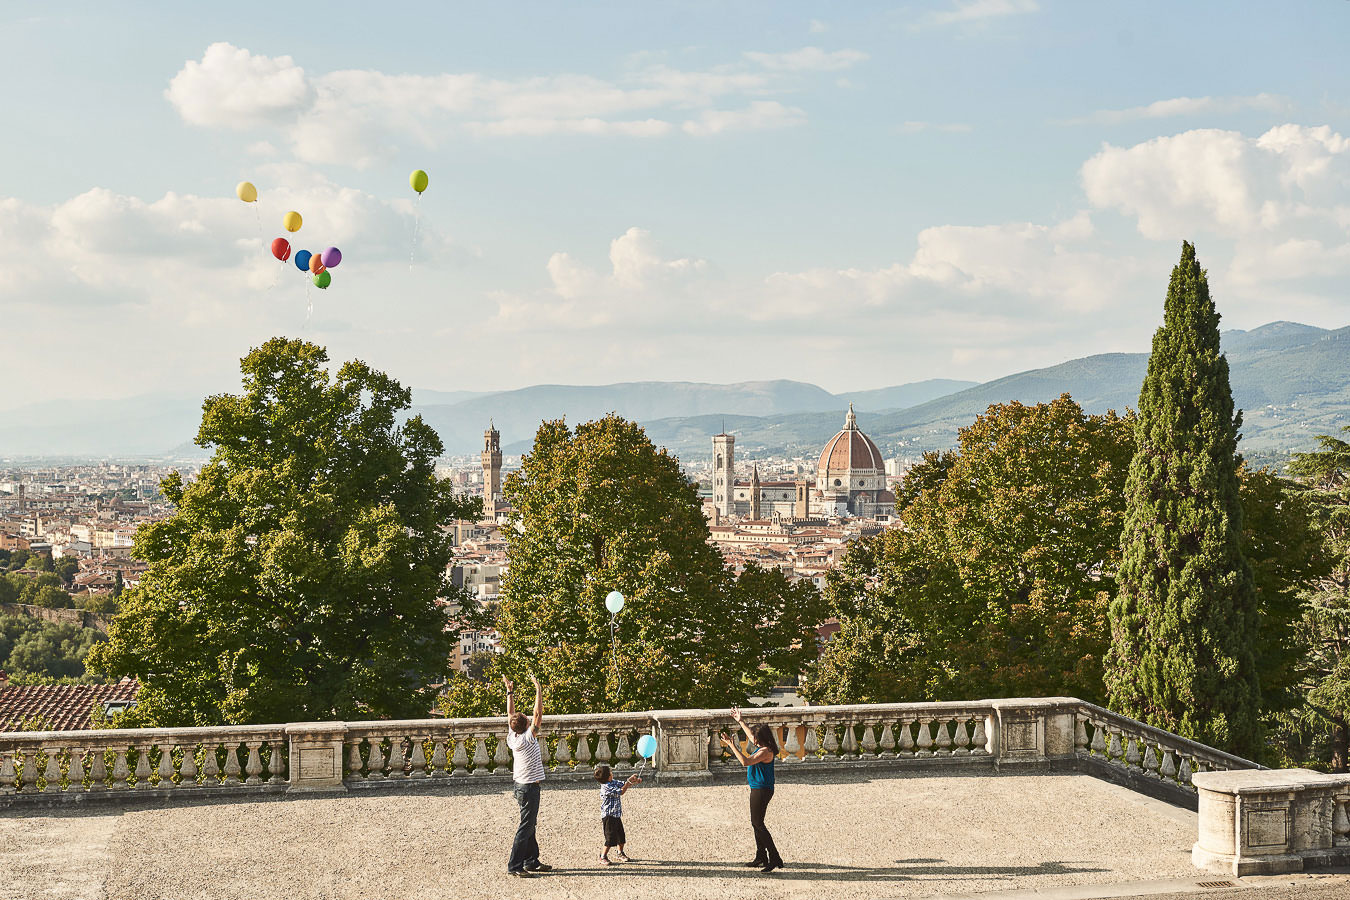 Florence vacation photo session with colour balloons